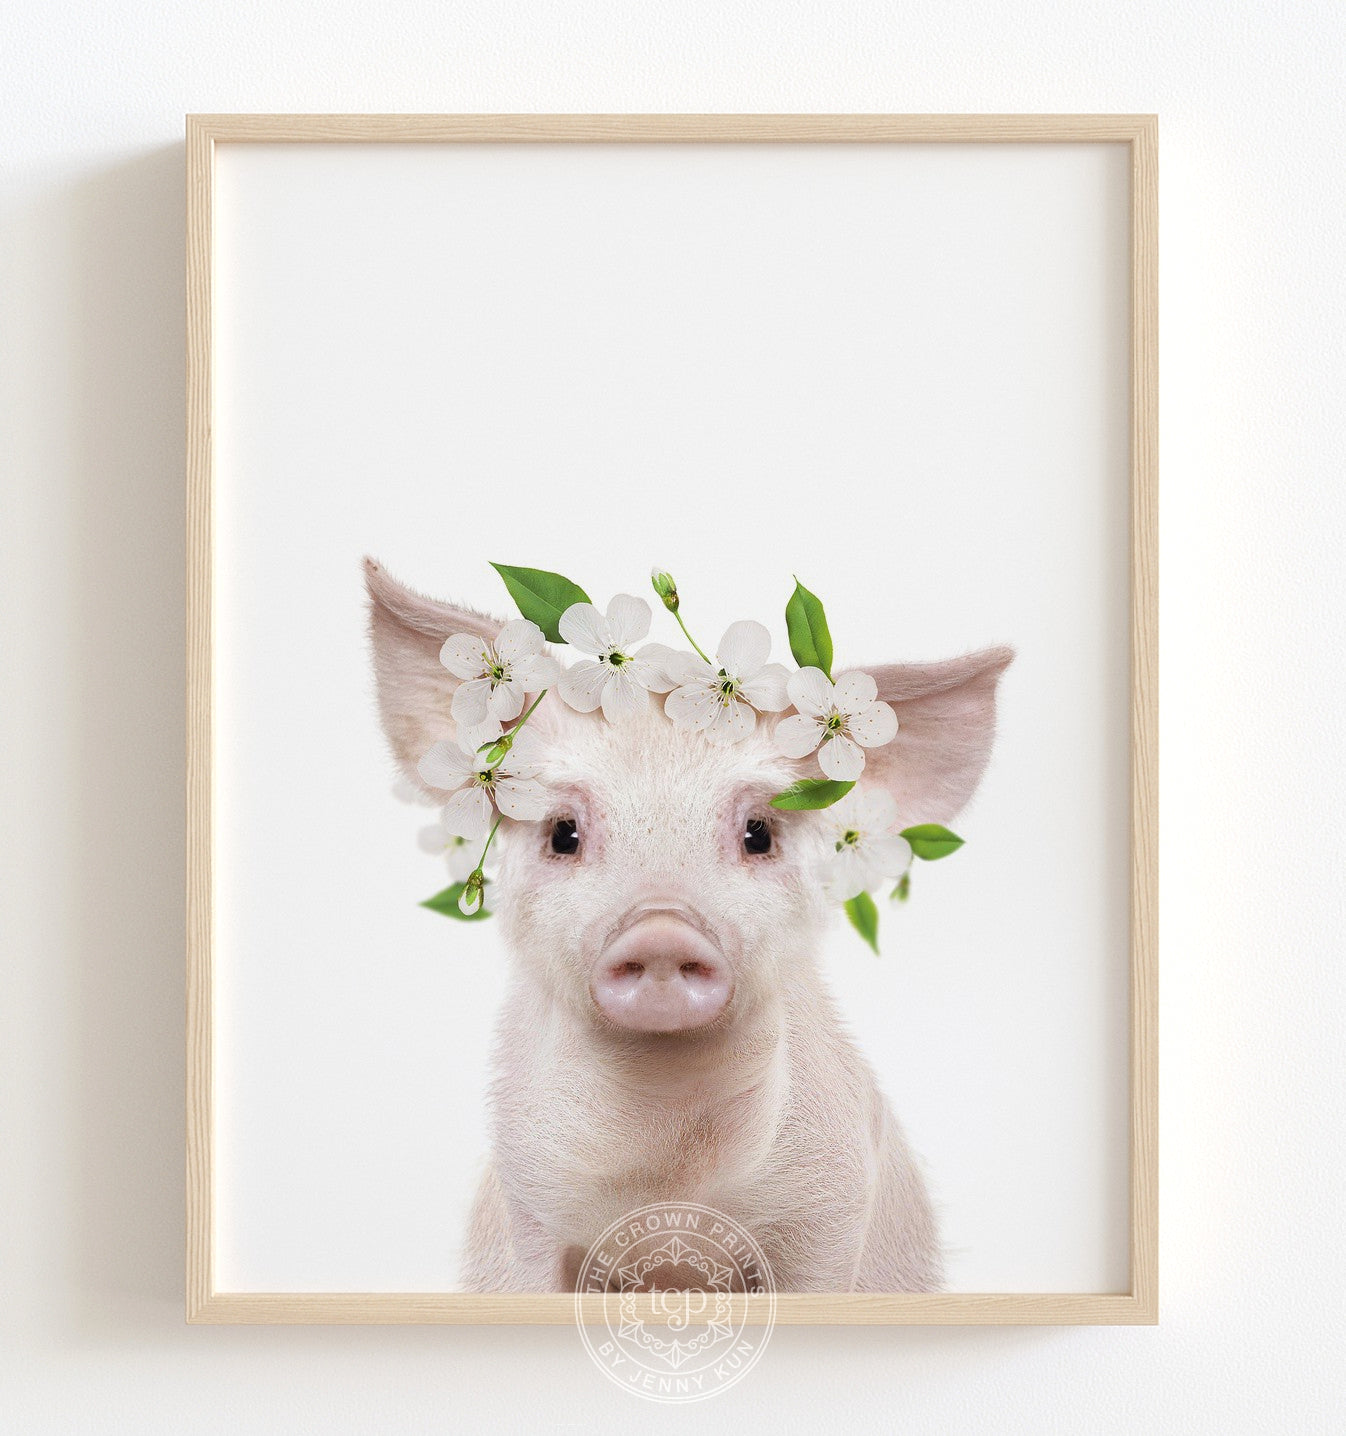 Baby Pig with Flower Crown Printable Art